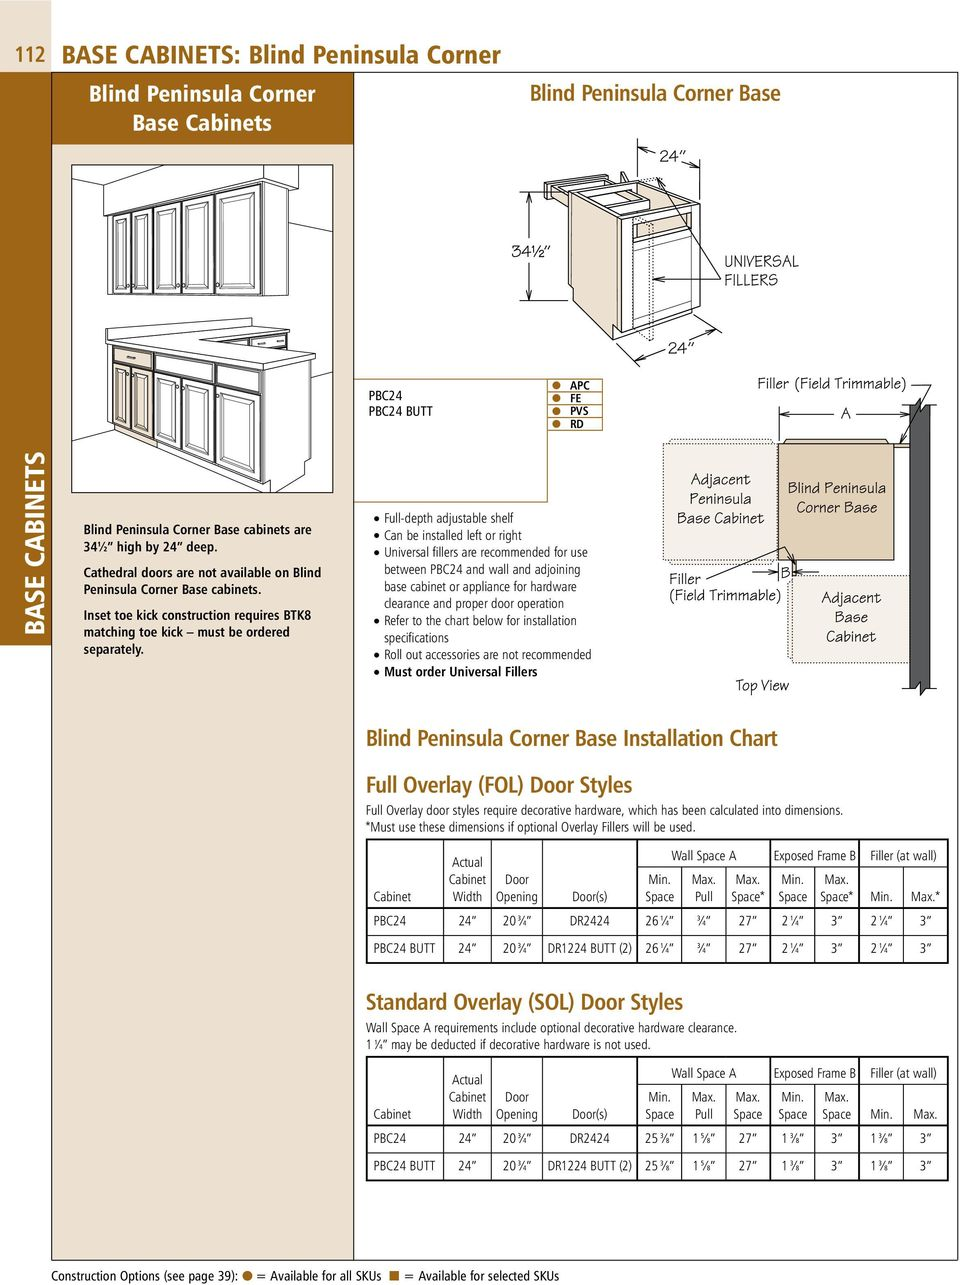 Base Cabinets Wall Pdf Pb30 Wiring Diagram Full Depth Adjustable Shelf Can Be Installed Left Or Right Universal Fillers Are Recommended For